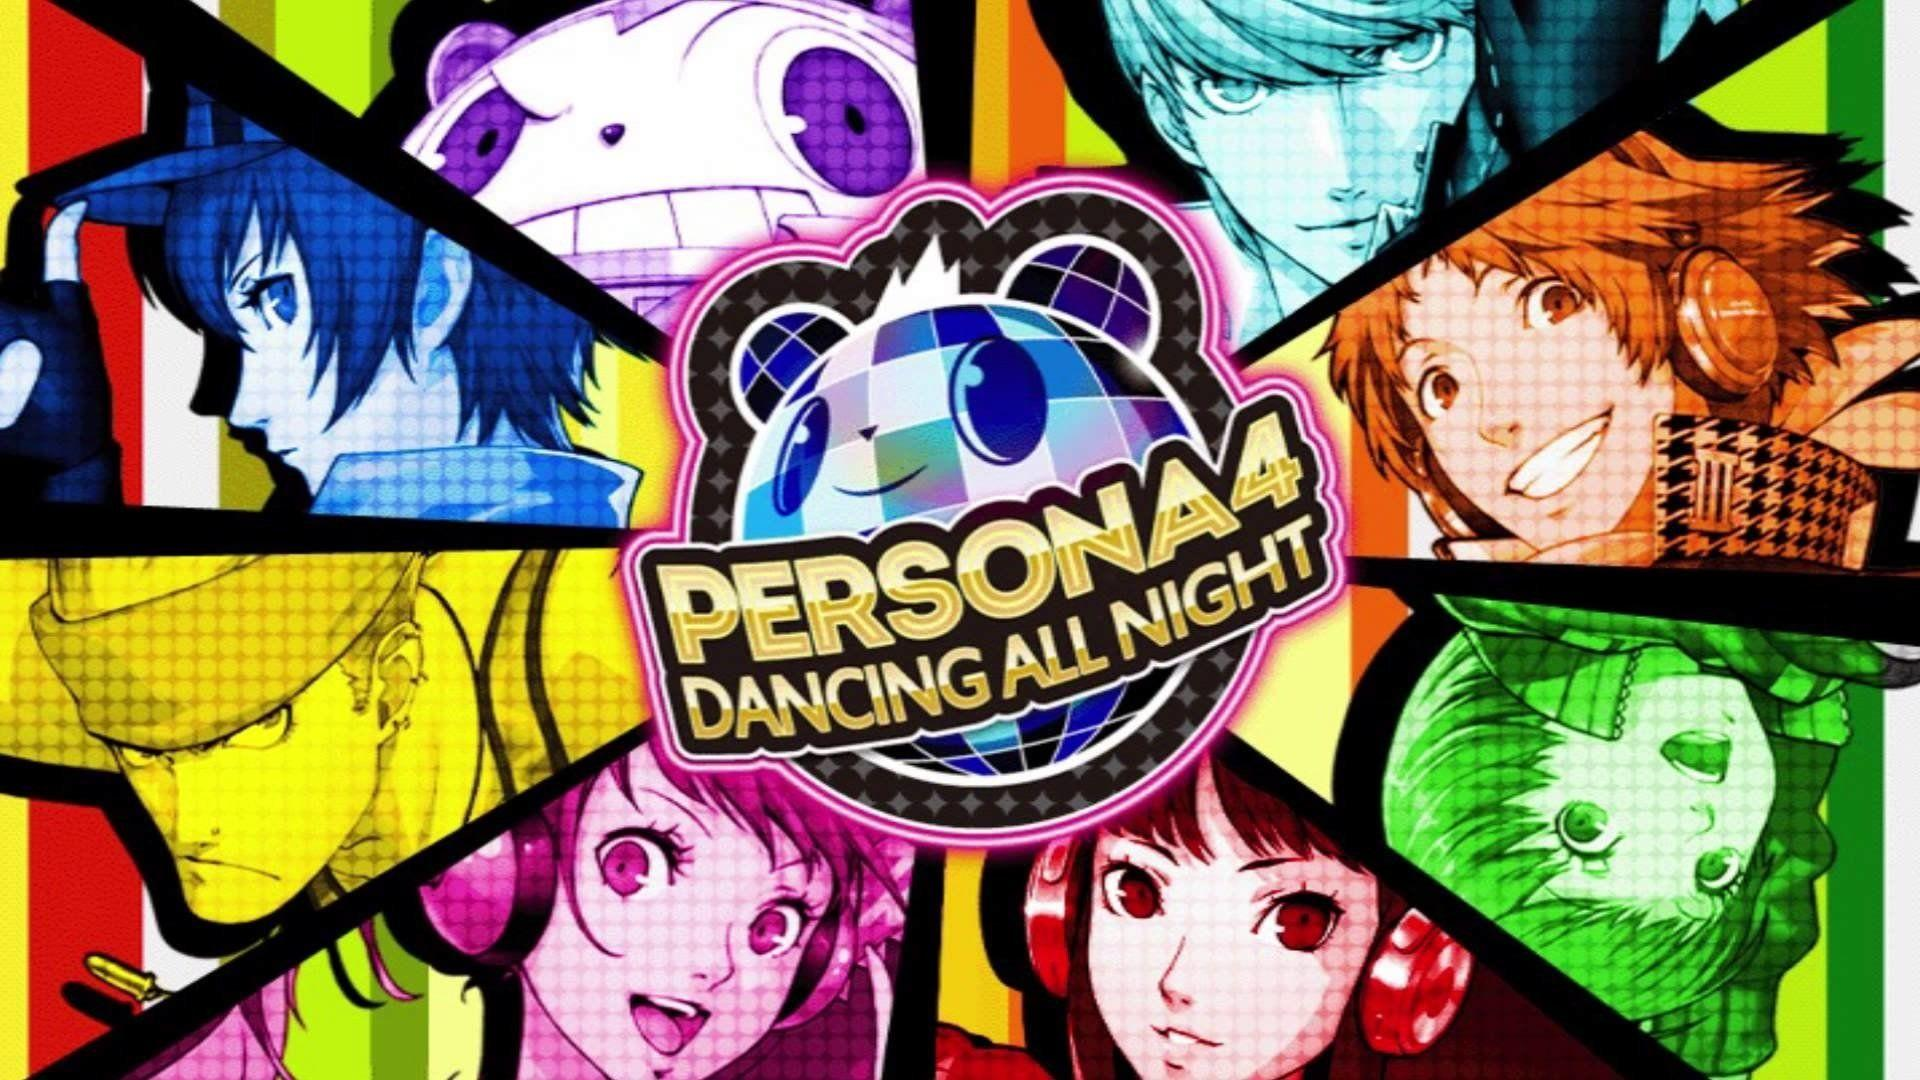 Persona 4 Dancing All Night Wallpapers Wallpaper Cave